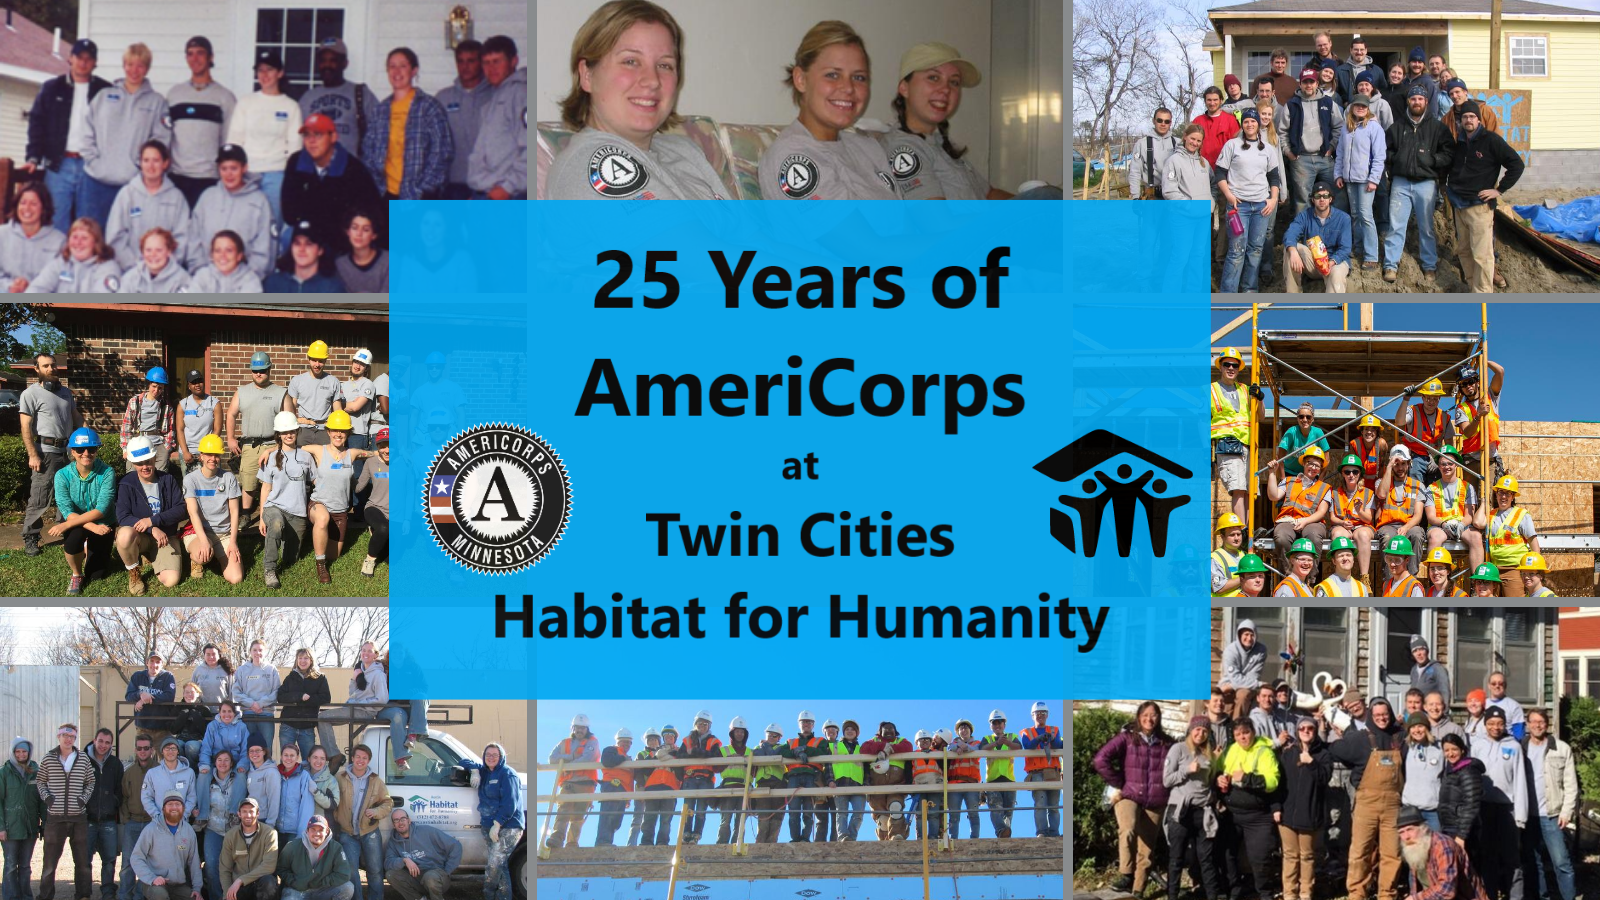 25 Years of AmeriCorps at Twin Cities Habitat